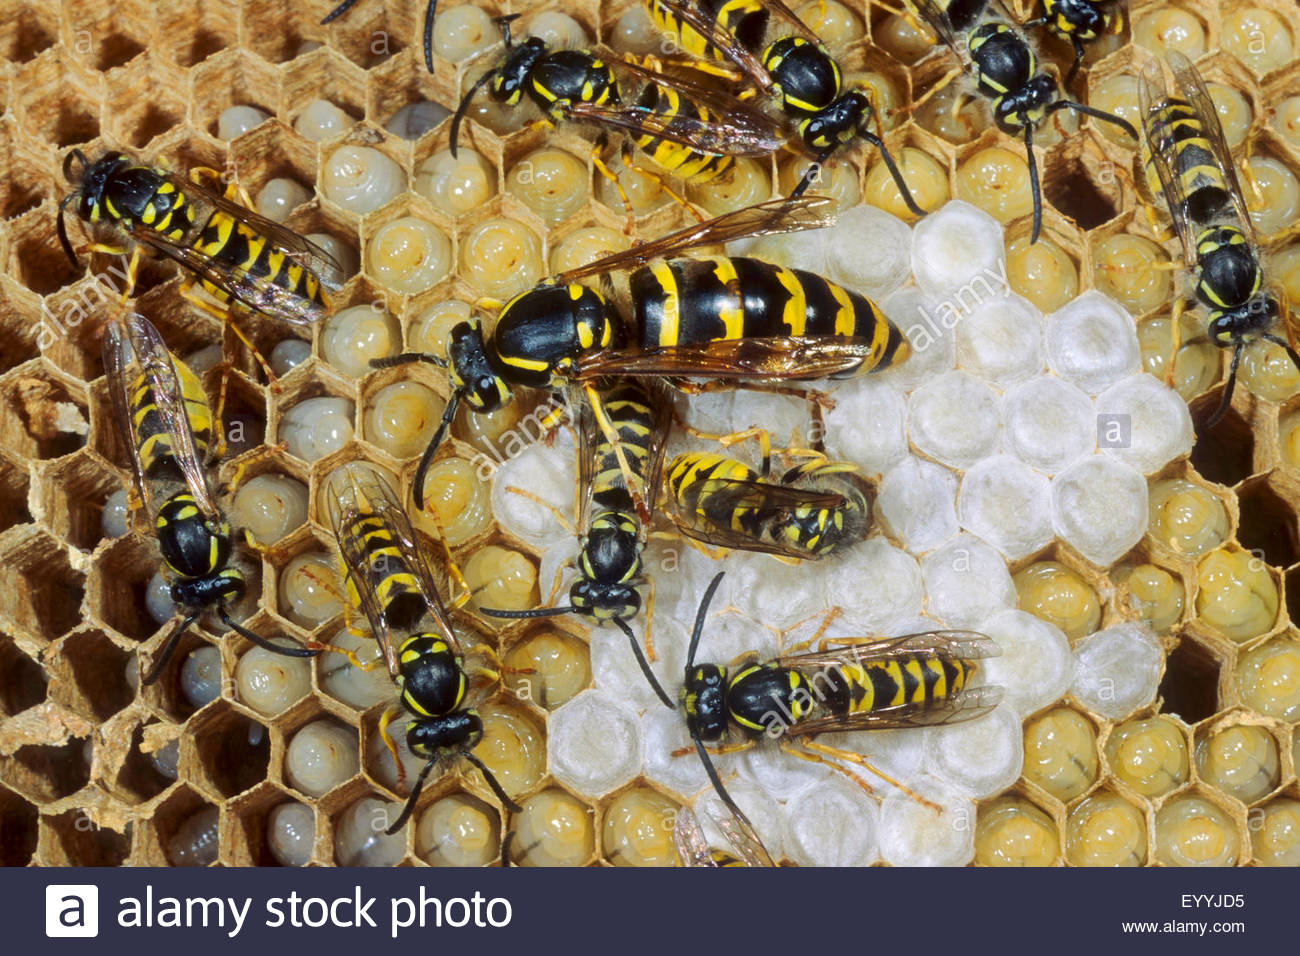 Queen Wasp Stock Photos & Queen Wasp Stock Images Alamy